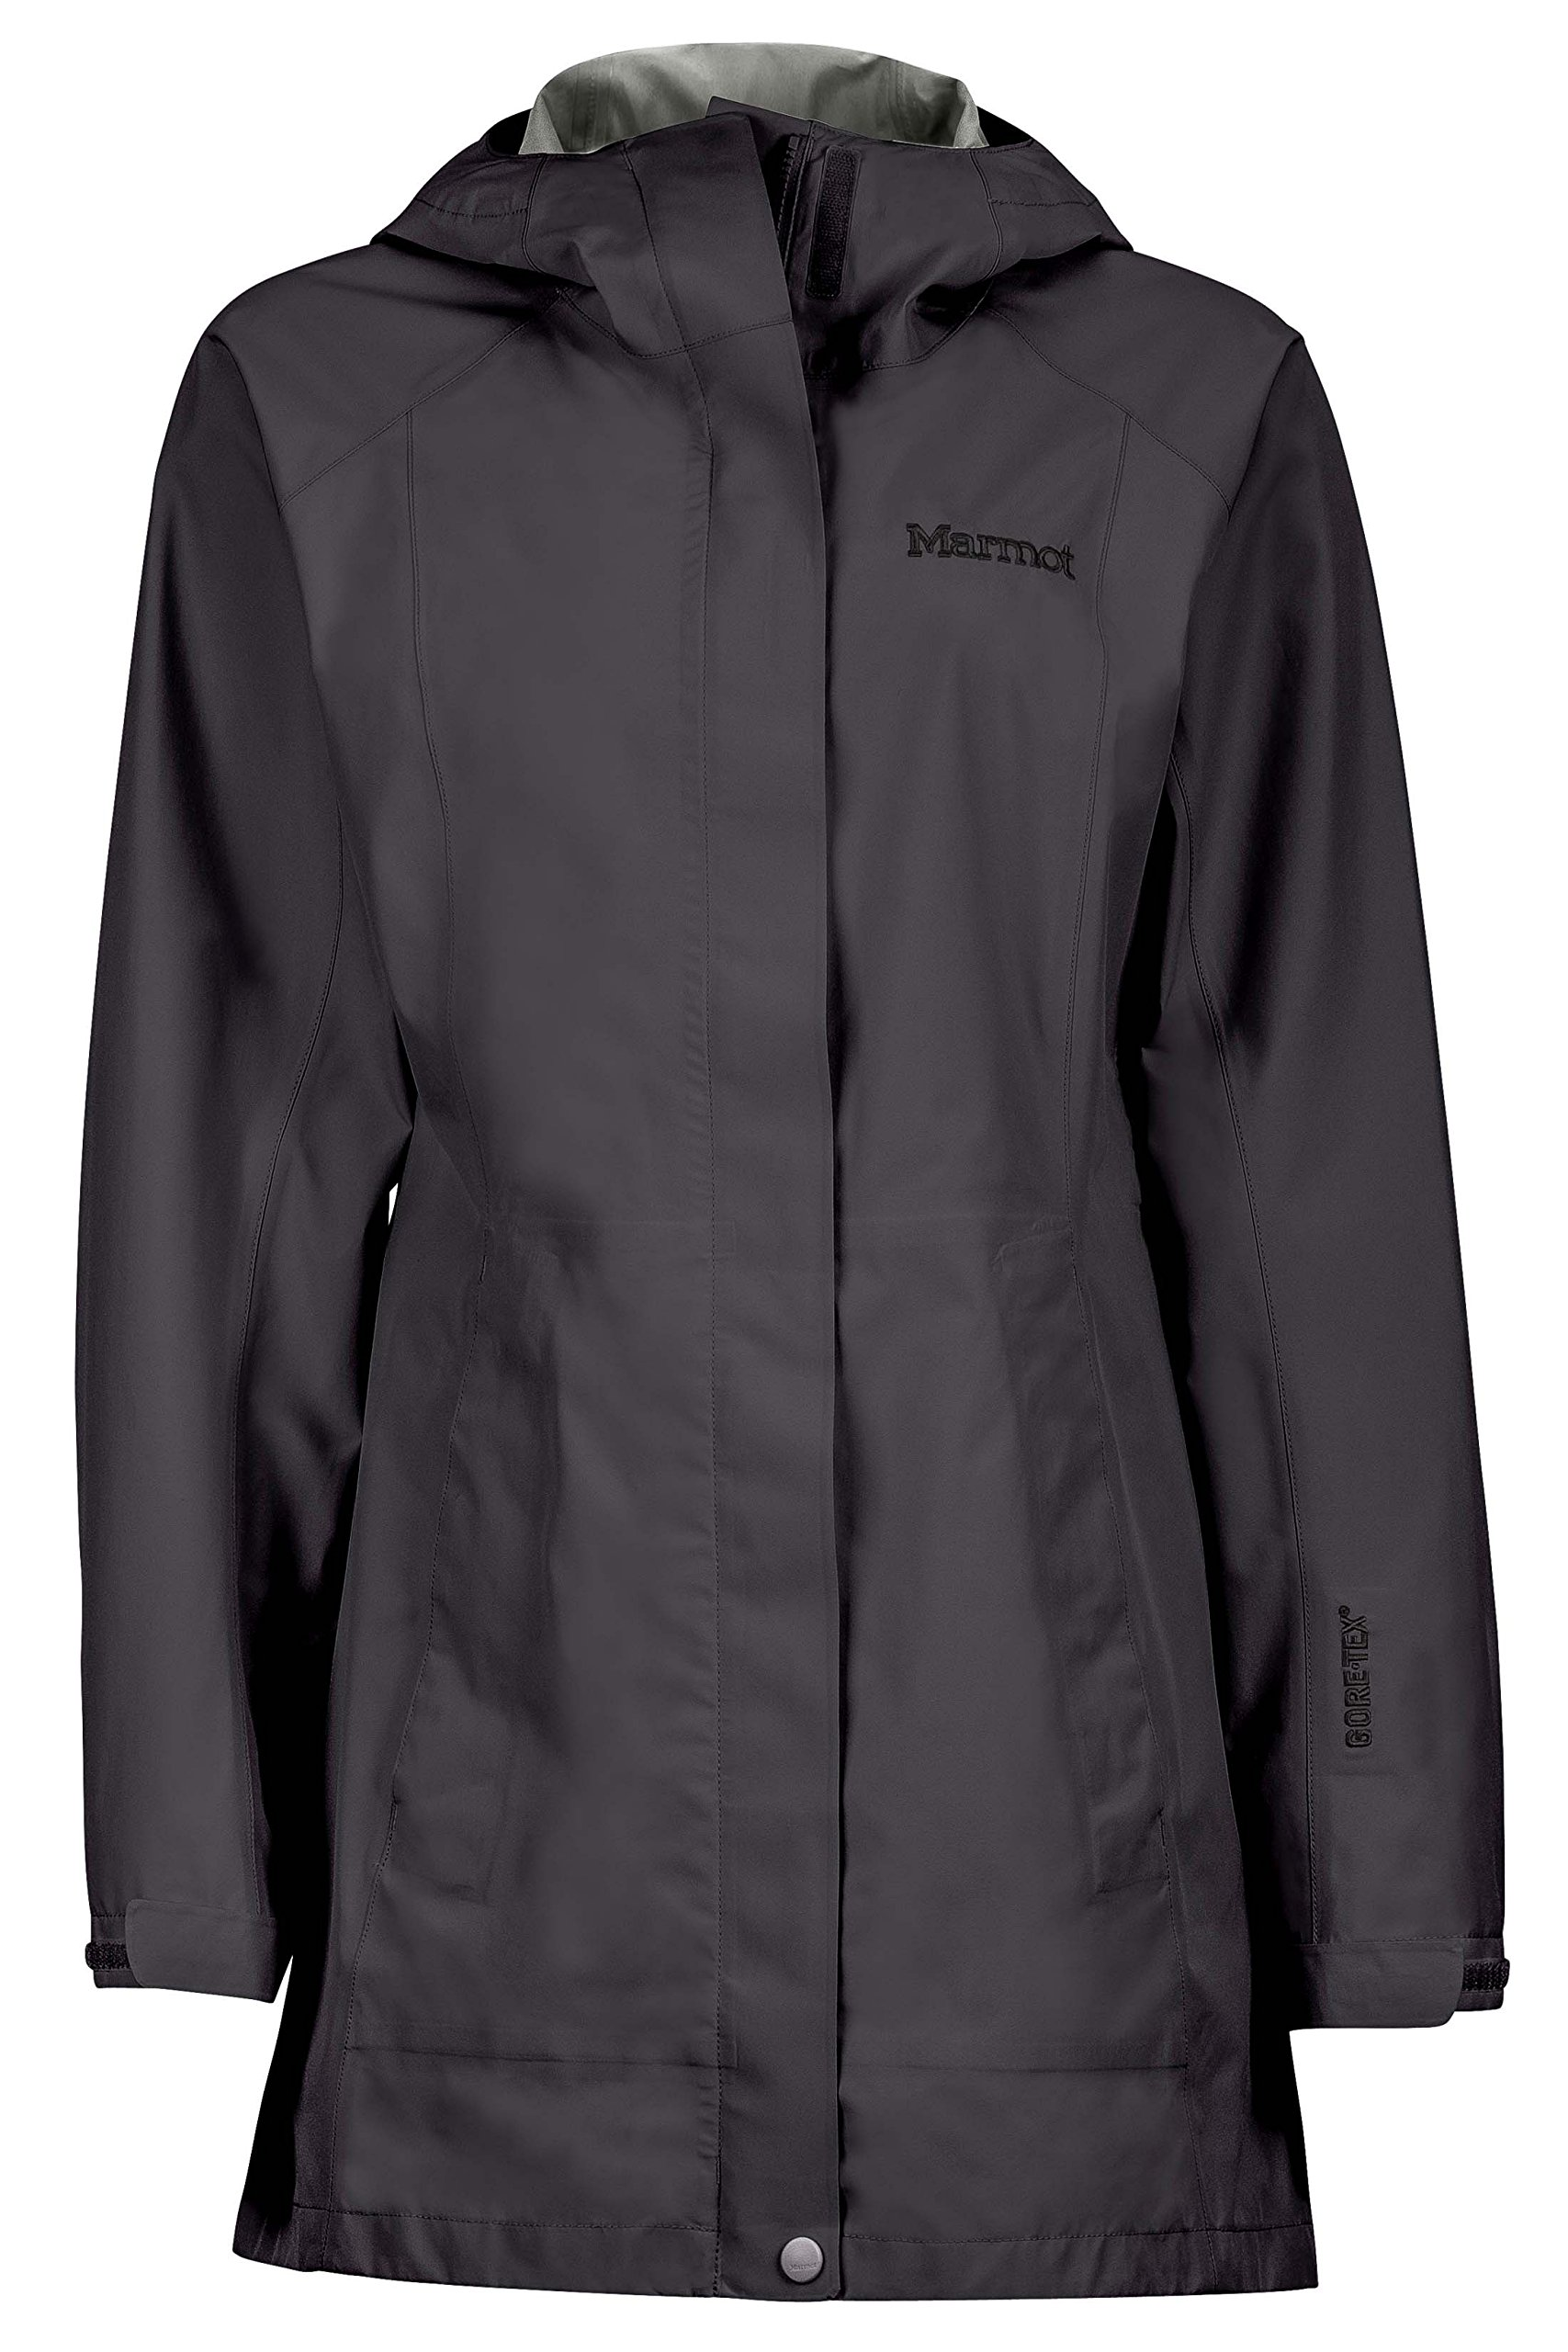 Marmot Women's Essential Lightweight Waterproof Rain Jacket, GORE-TEX with PACLITE Technology, Jet Black, Large by Marmot